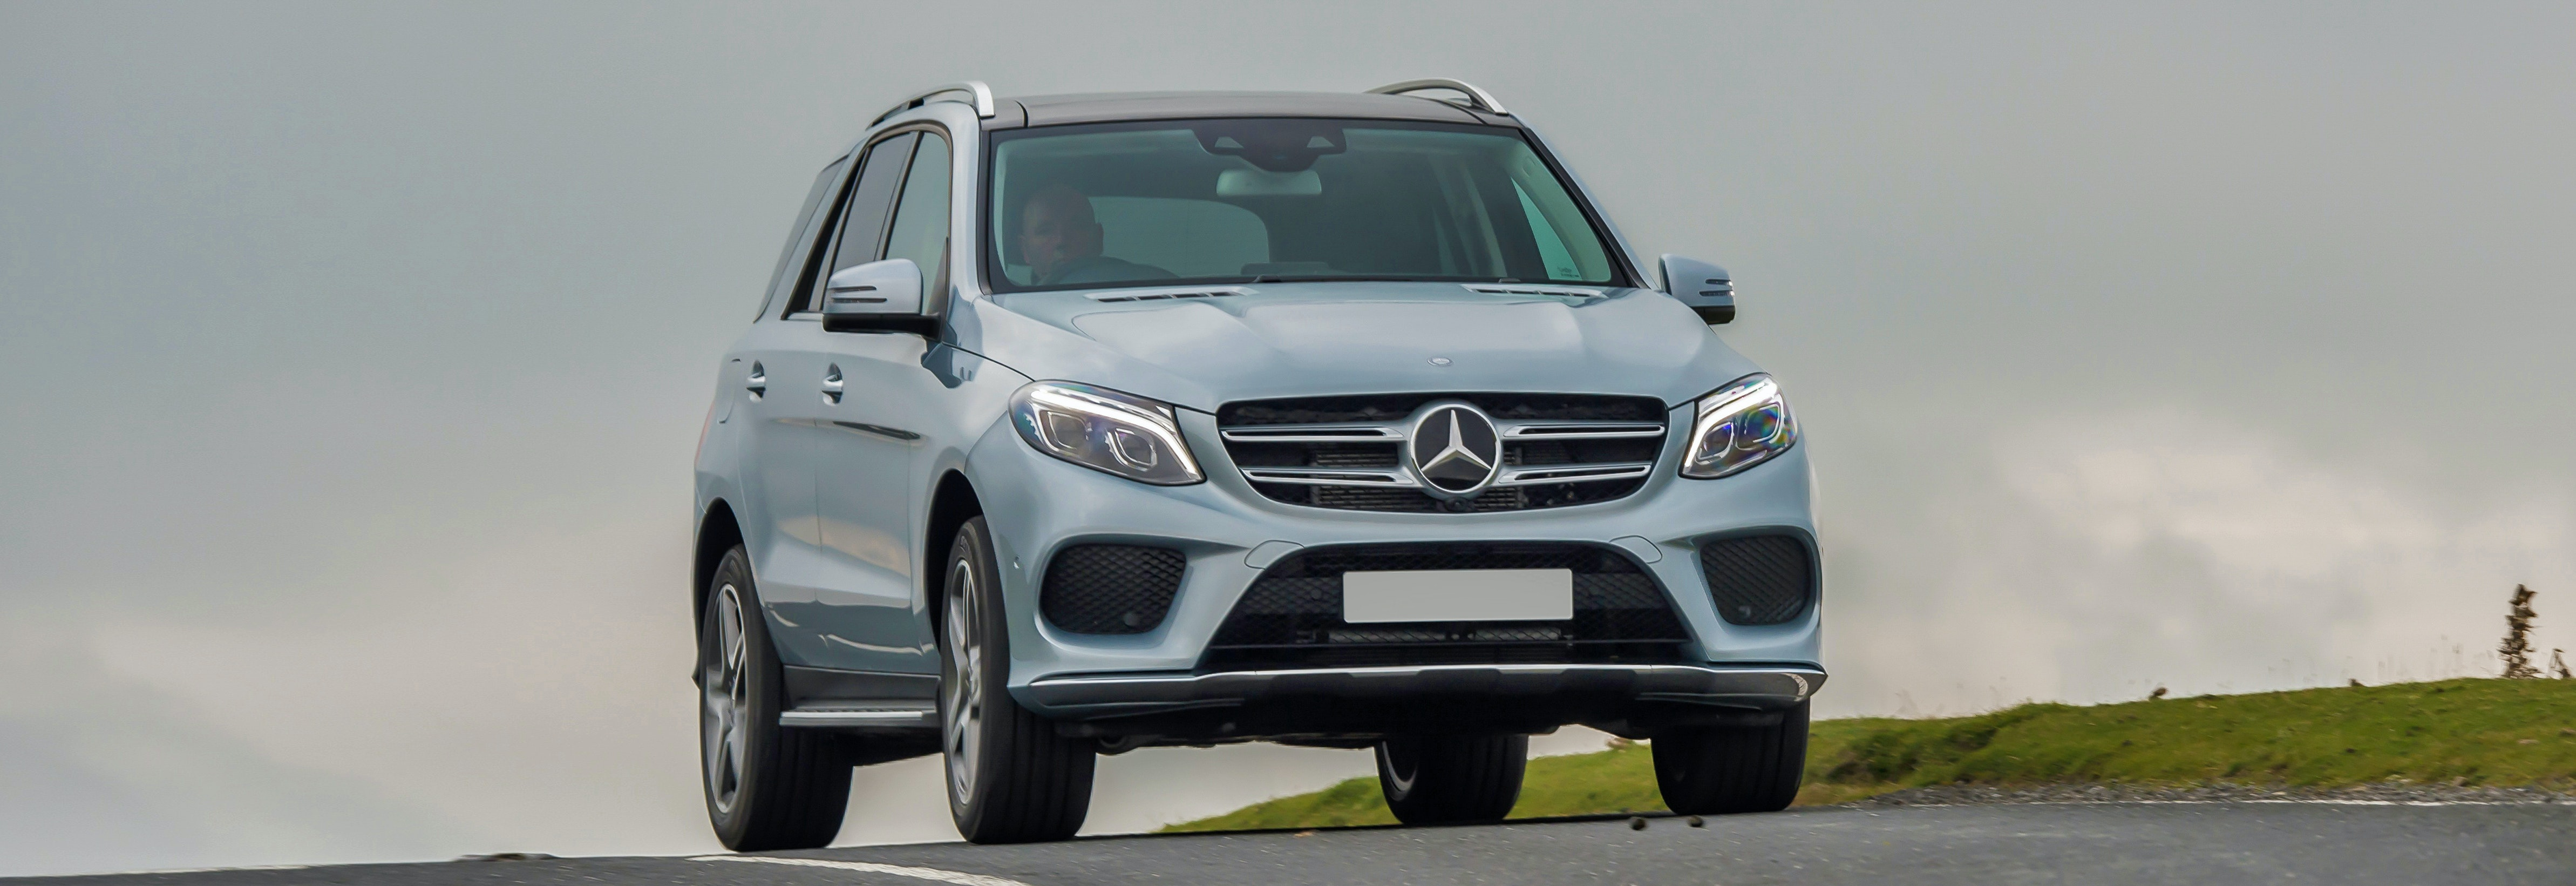 2018 Mercedes Benz Gle Silver Driving Front